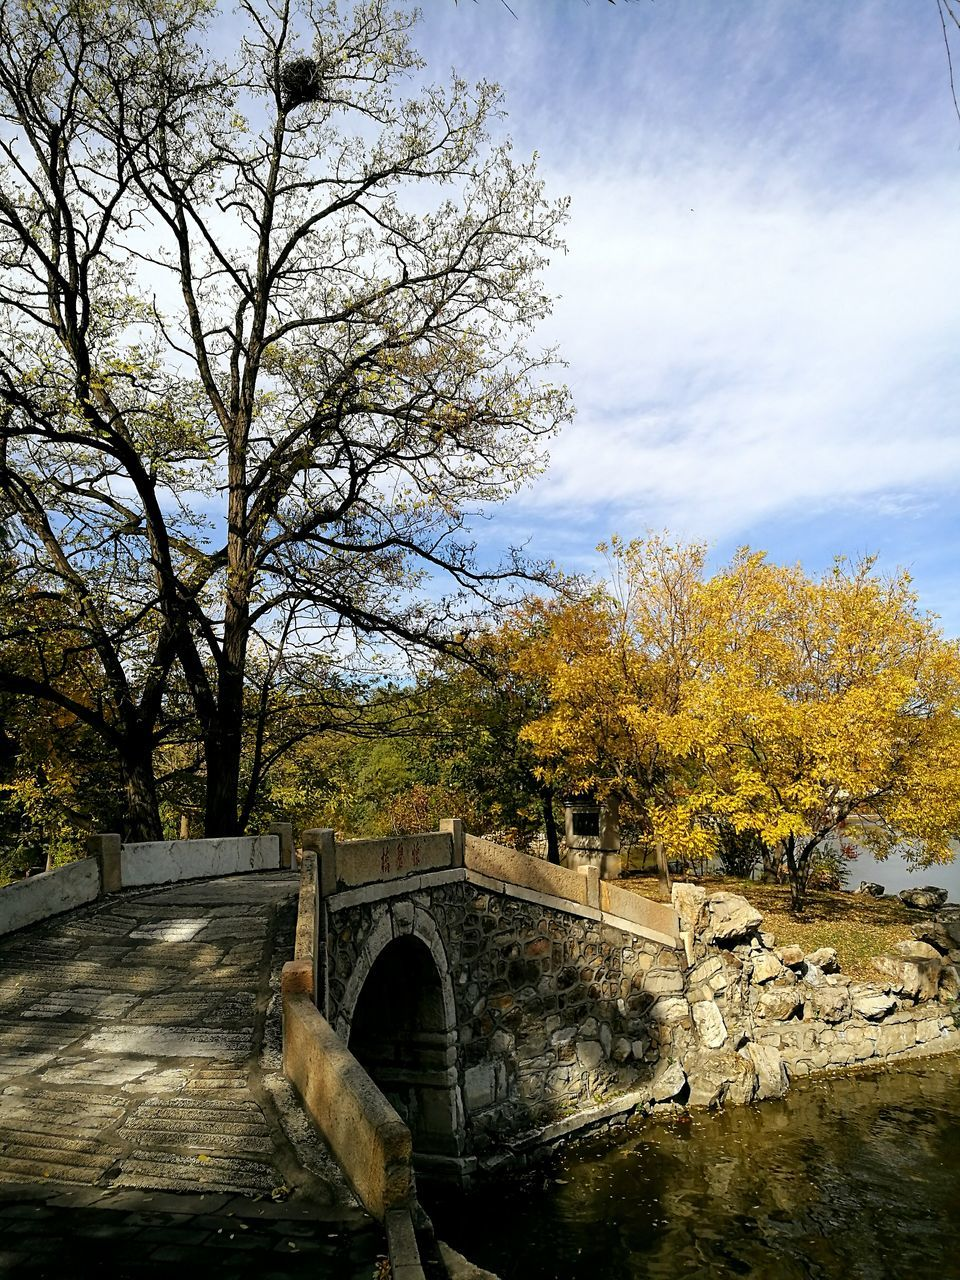 bridge - man made structure, tree, connection, nature, architecture, built structure, water, sky, cloud - sky, day, no people, outdoors, growth, river, scenics, tranquility, beauty in nature, autumn, footbridge, branch